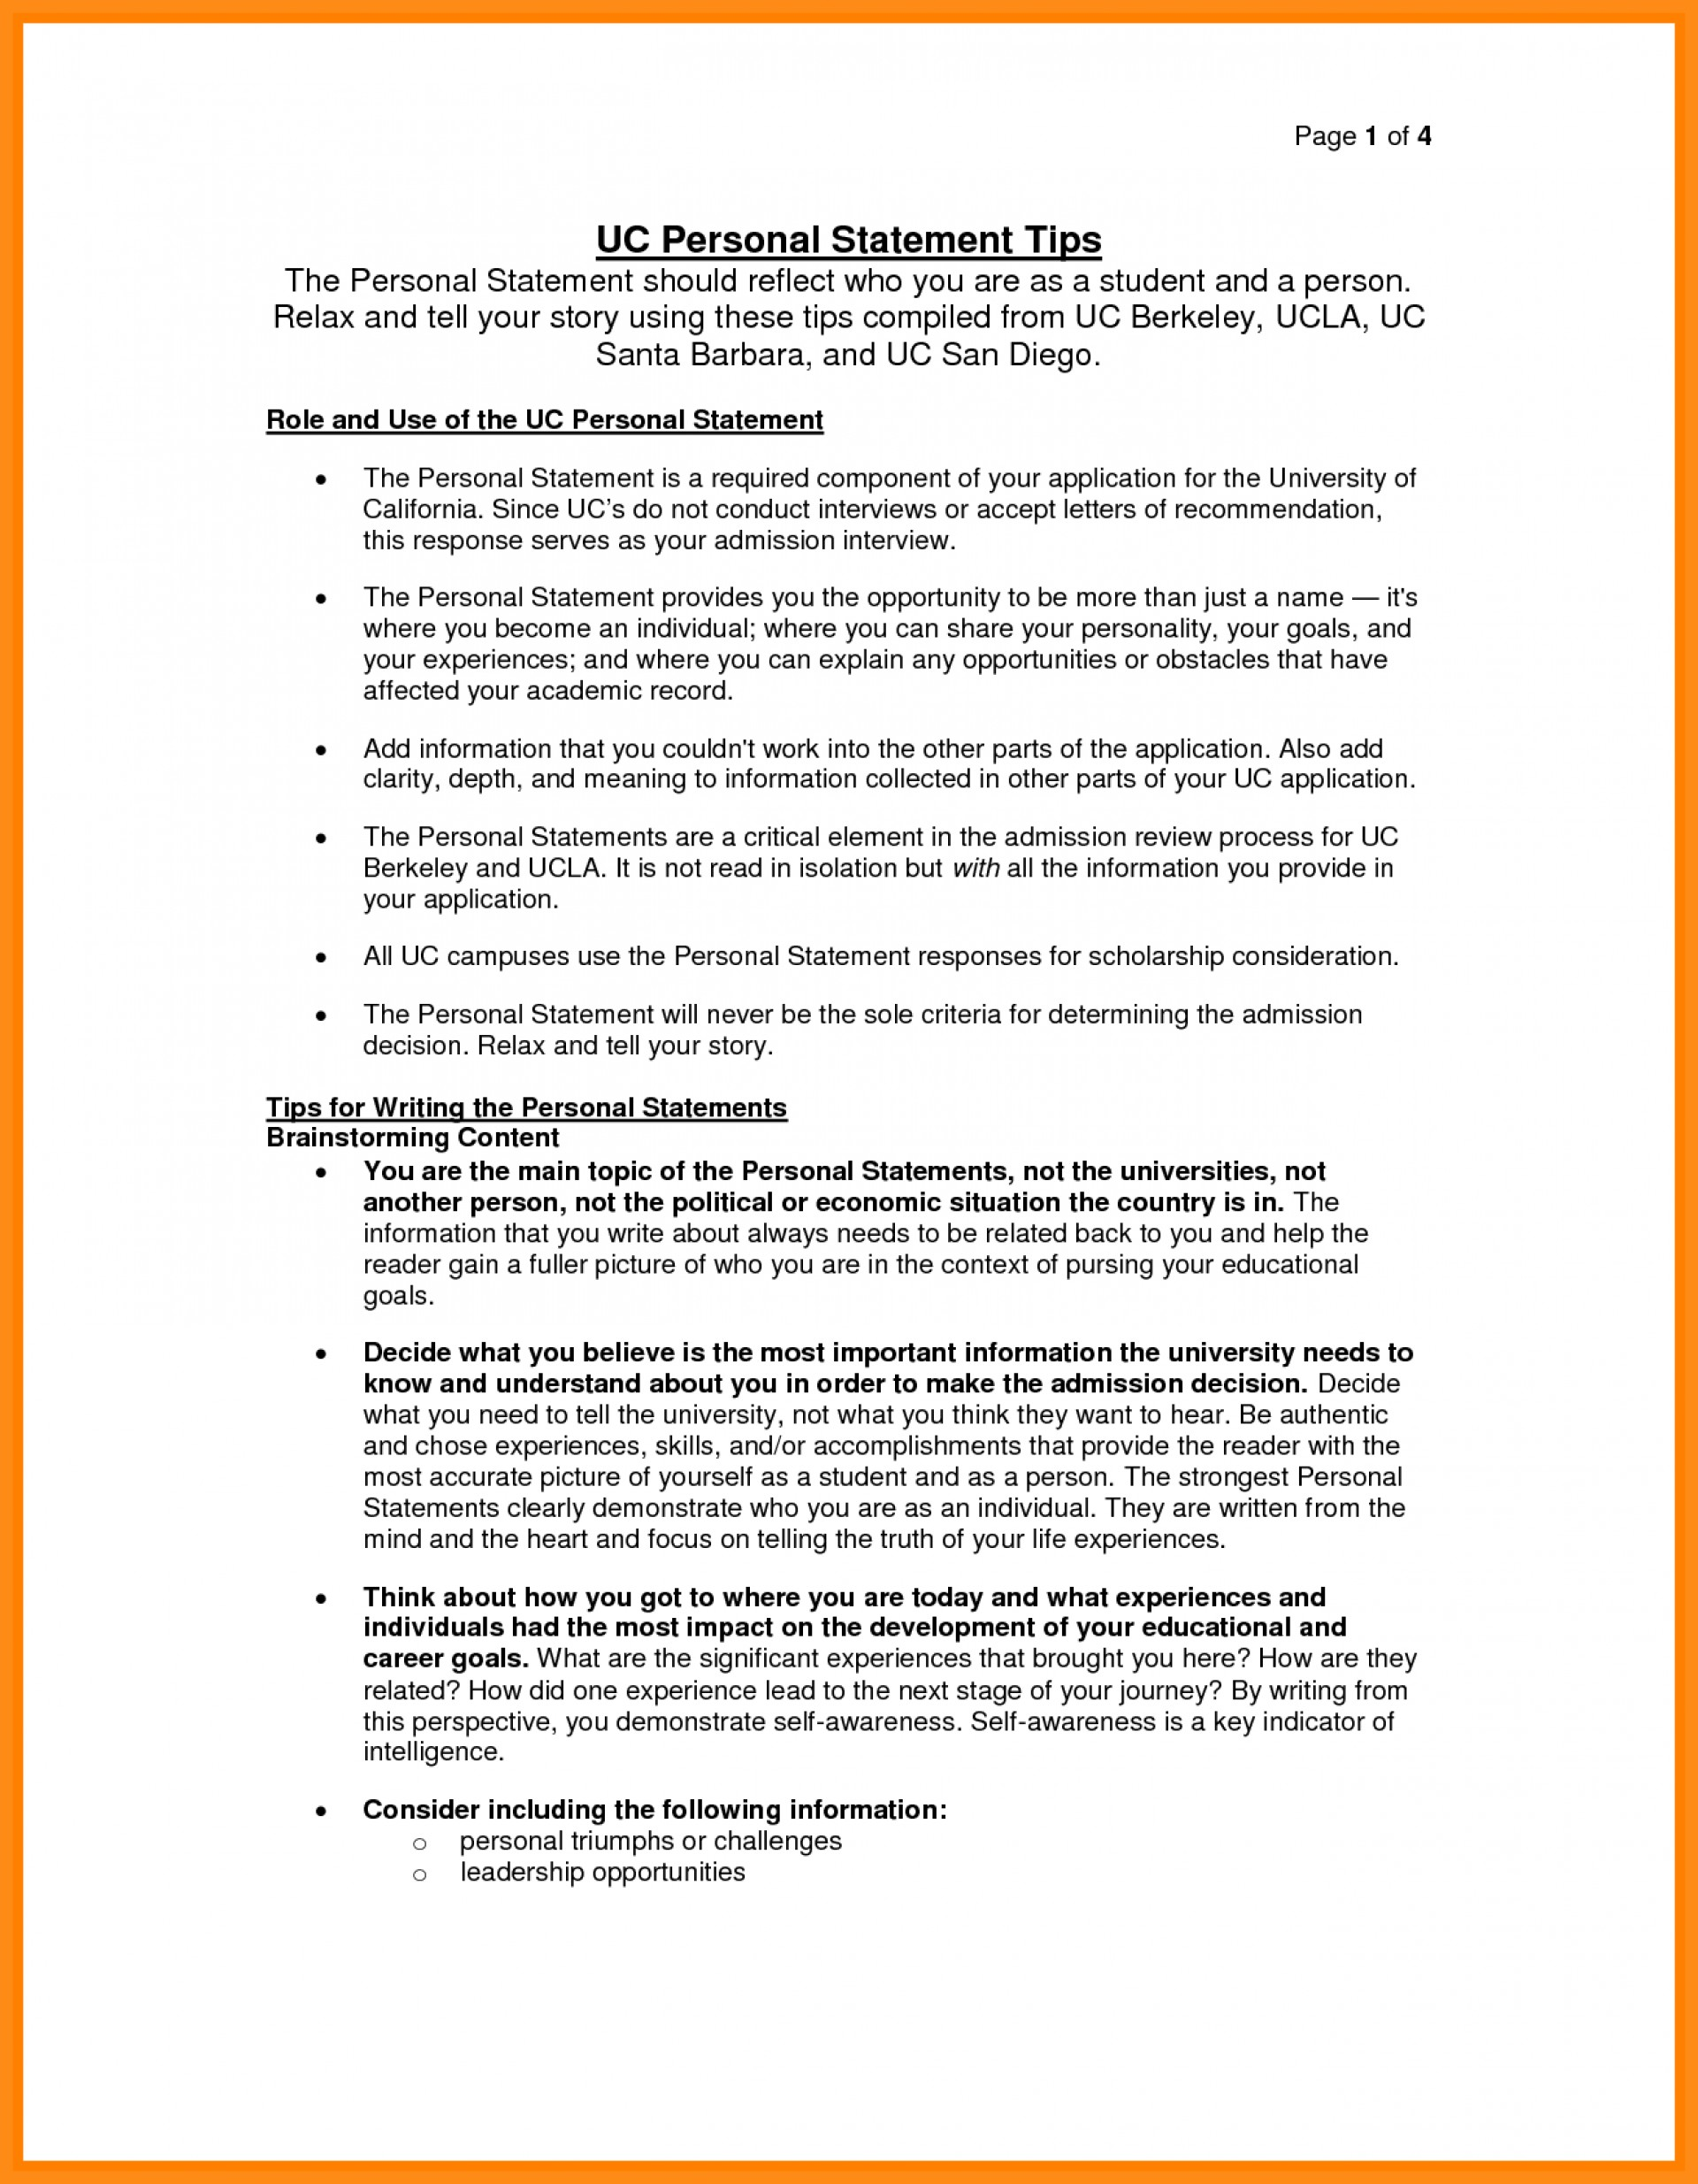 011 Essay Example Uc Personal Statement Prompt Examples Of Statements For Template Mrnpttfa Application Imposing Prompts 2016-17 1 Berkeley 2017 1920